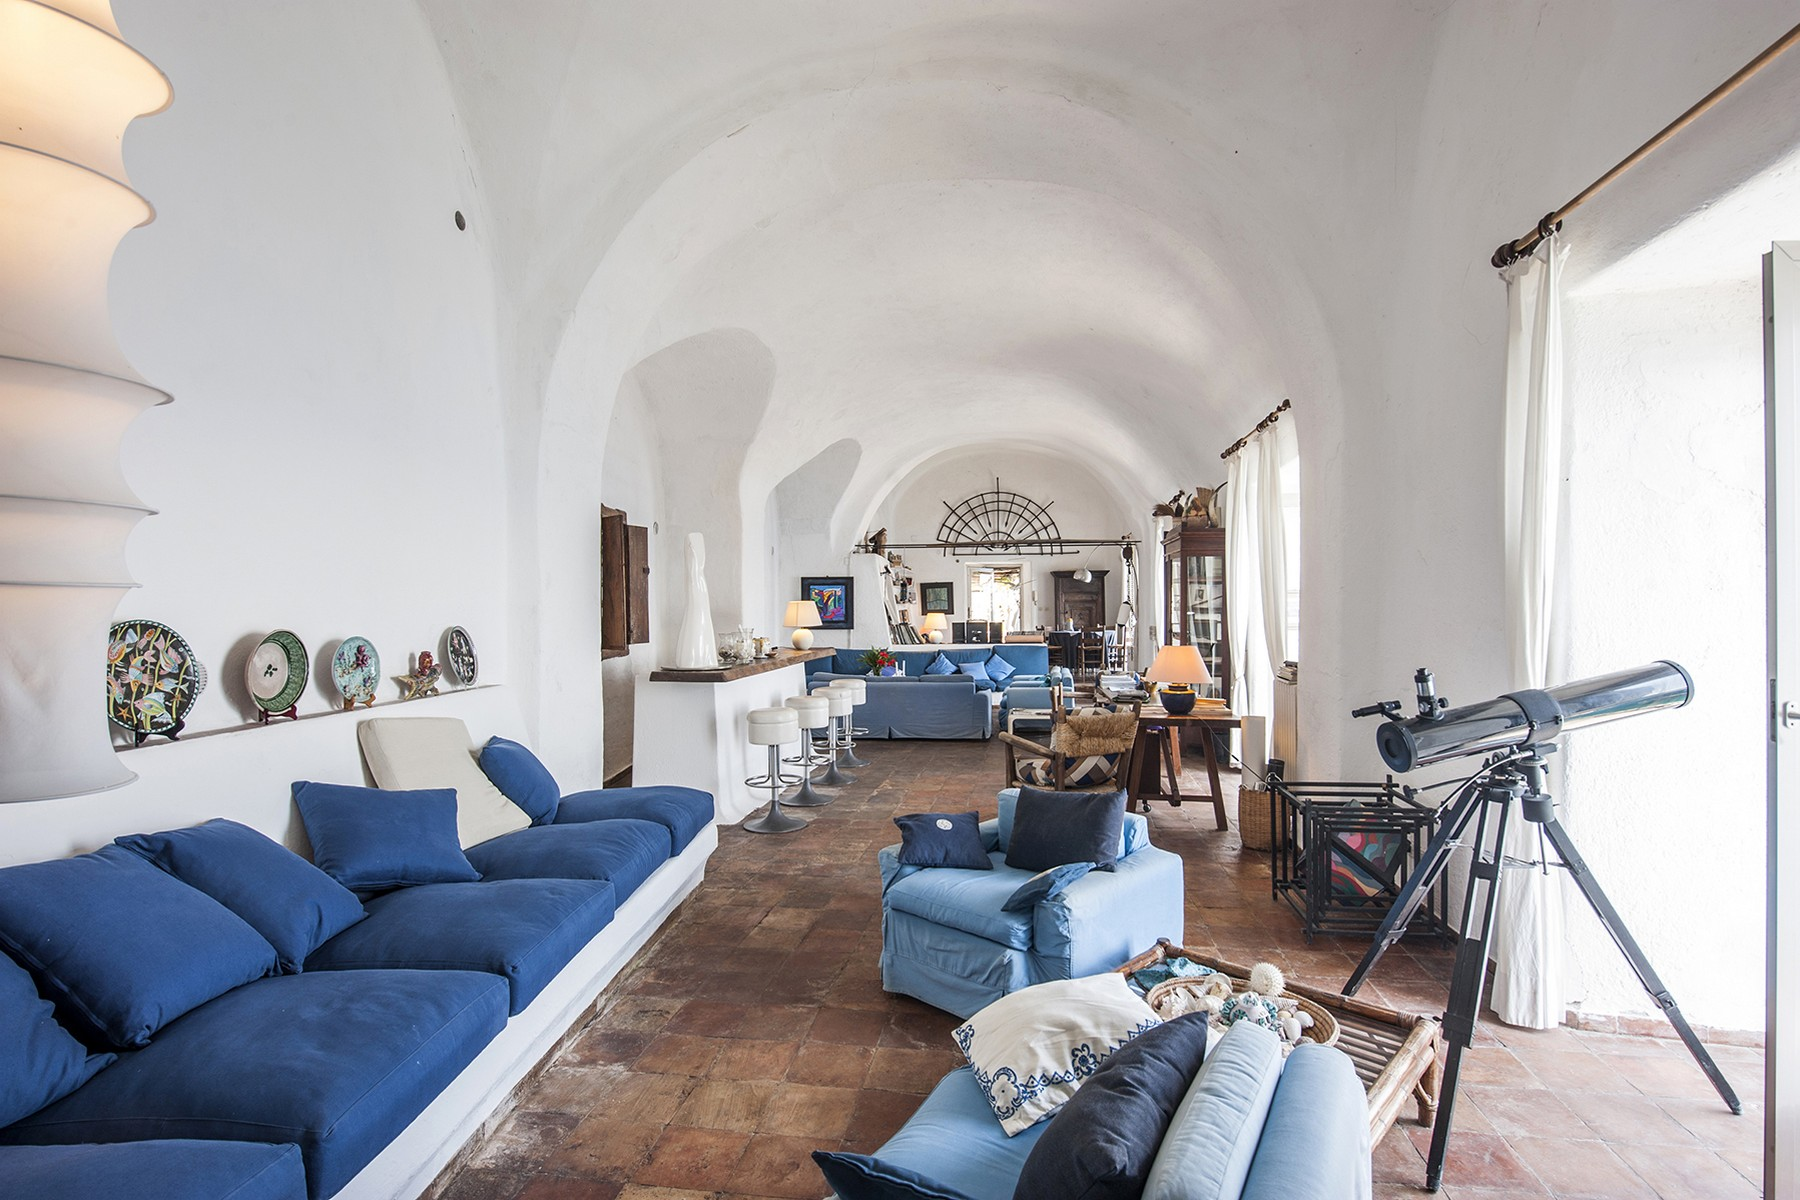 Additional photo for property listing at Villa Chandon Via Marina Conca Dei Marini, Salerno 84010 Italia